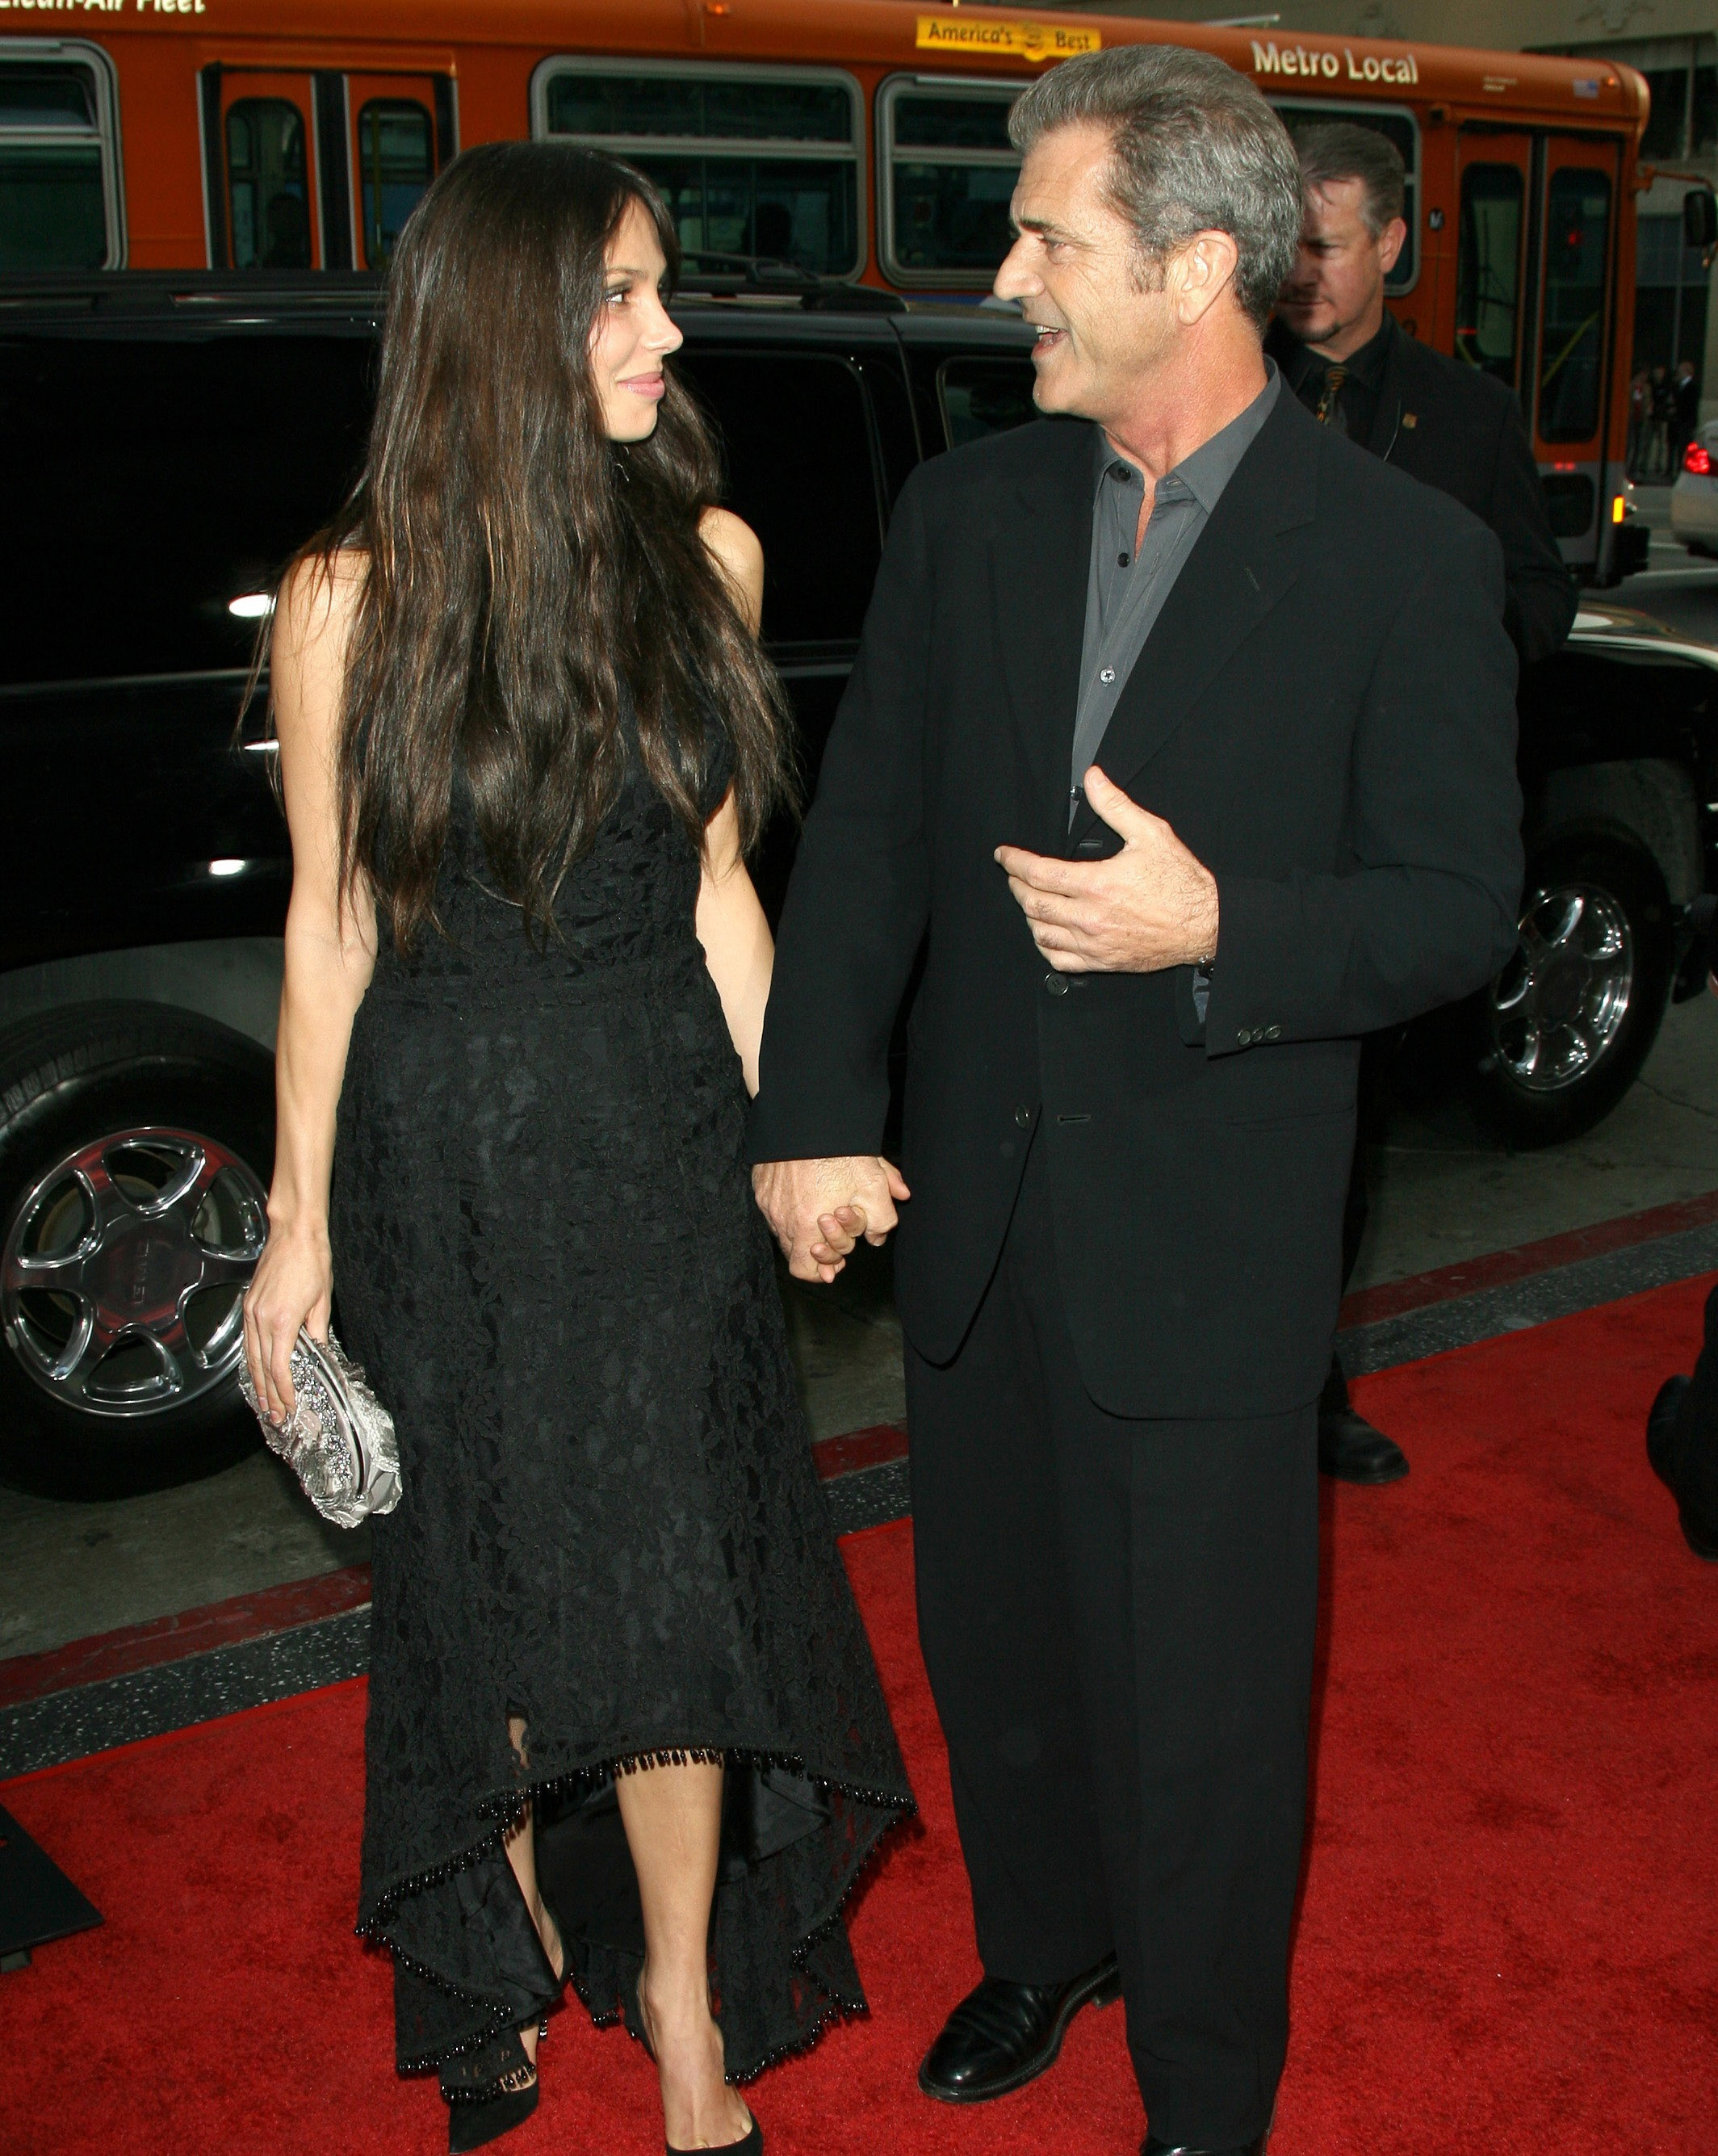 Mel Gibson agrees to pay ex Oksana Grigorieva $10k more per month in child support